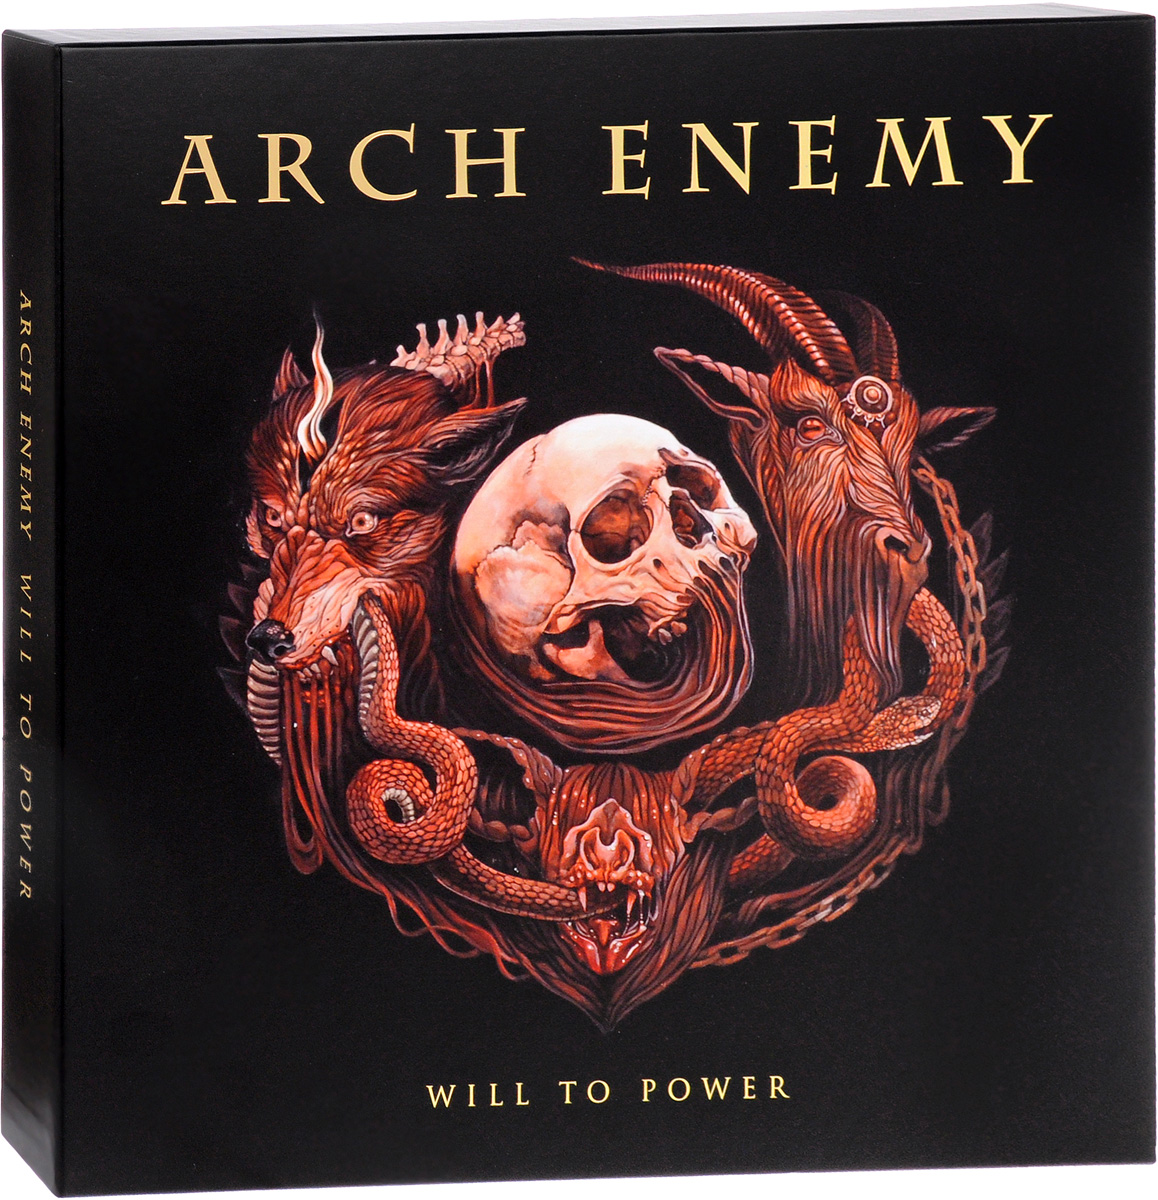 Фото - Arch Enemy Arch Enemy. Will To Power. Limited Deluxe Edition (LP + мини-LP + 2 CD) cd led zeppelin ii deluxe edition